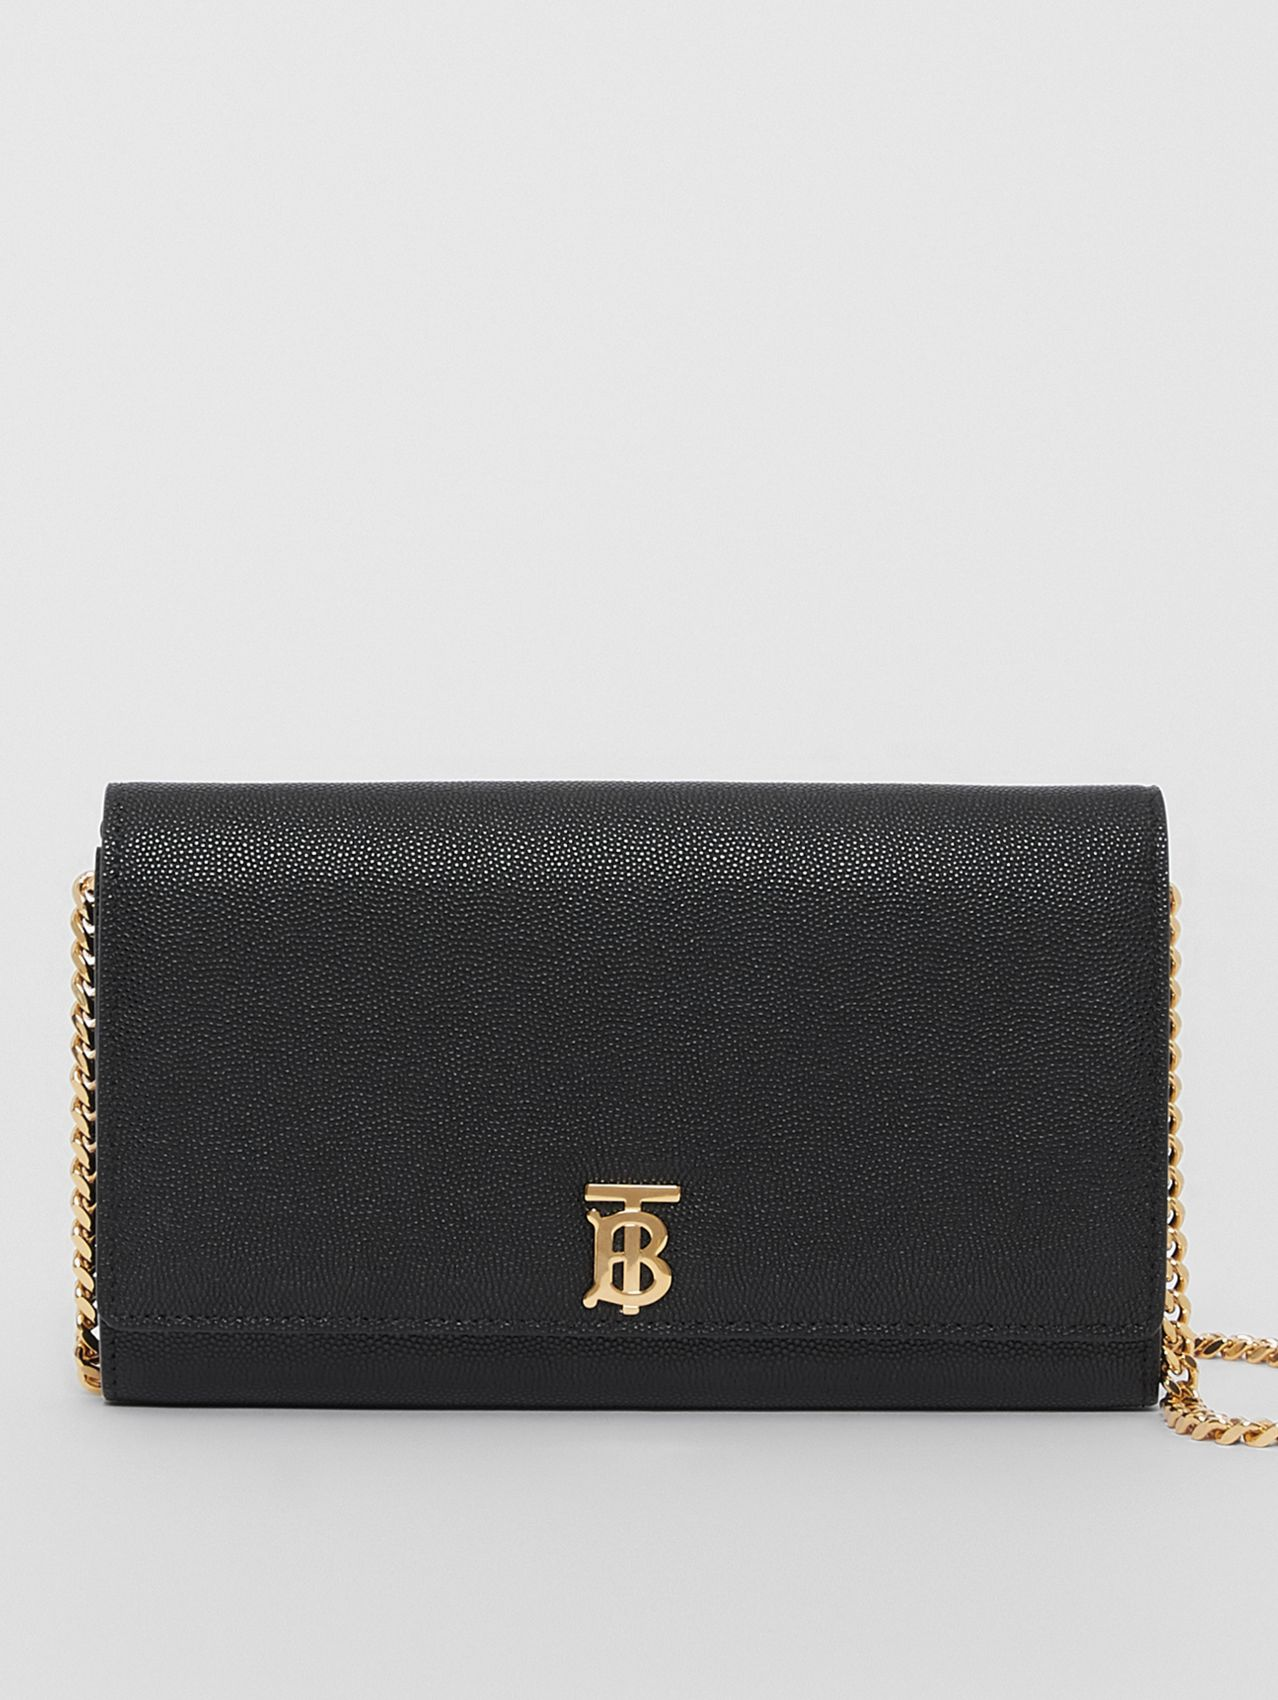 Monogram Motif Leather Wallet with Detachable Strap in Black